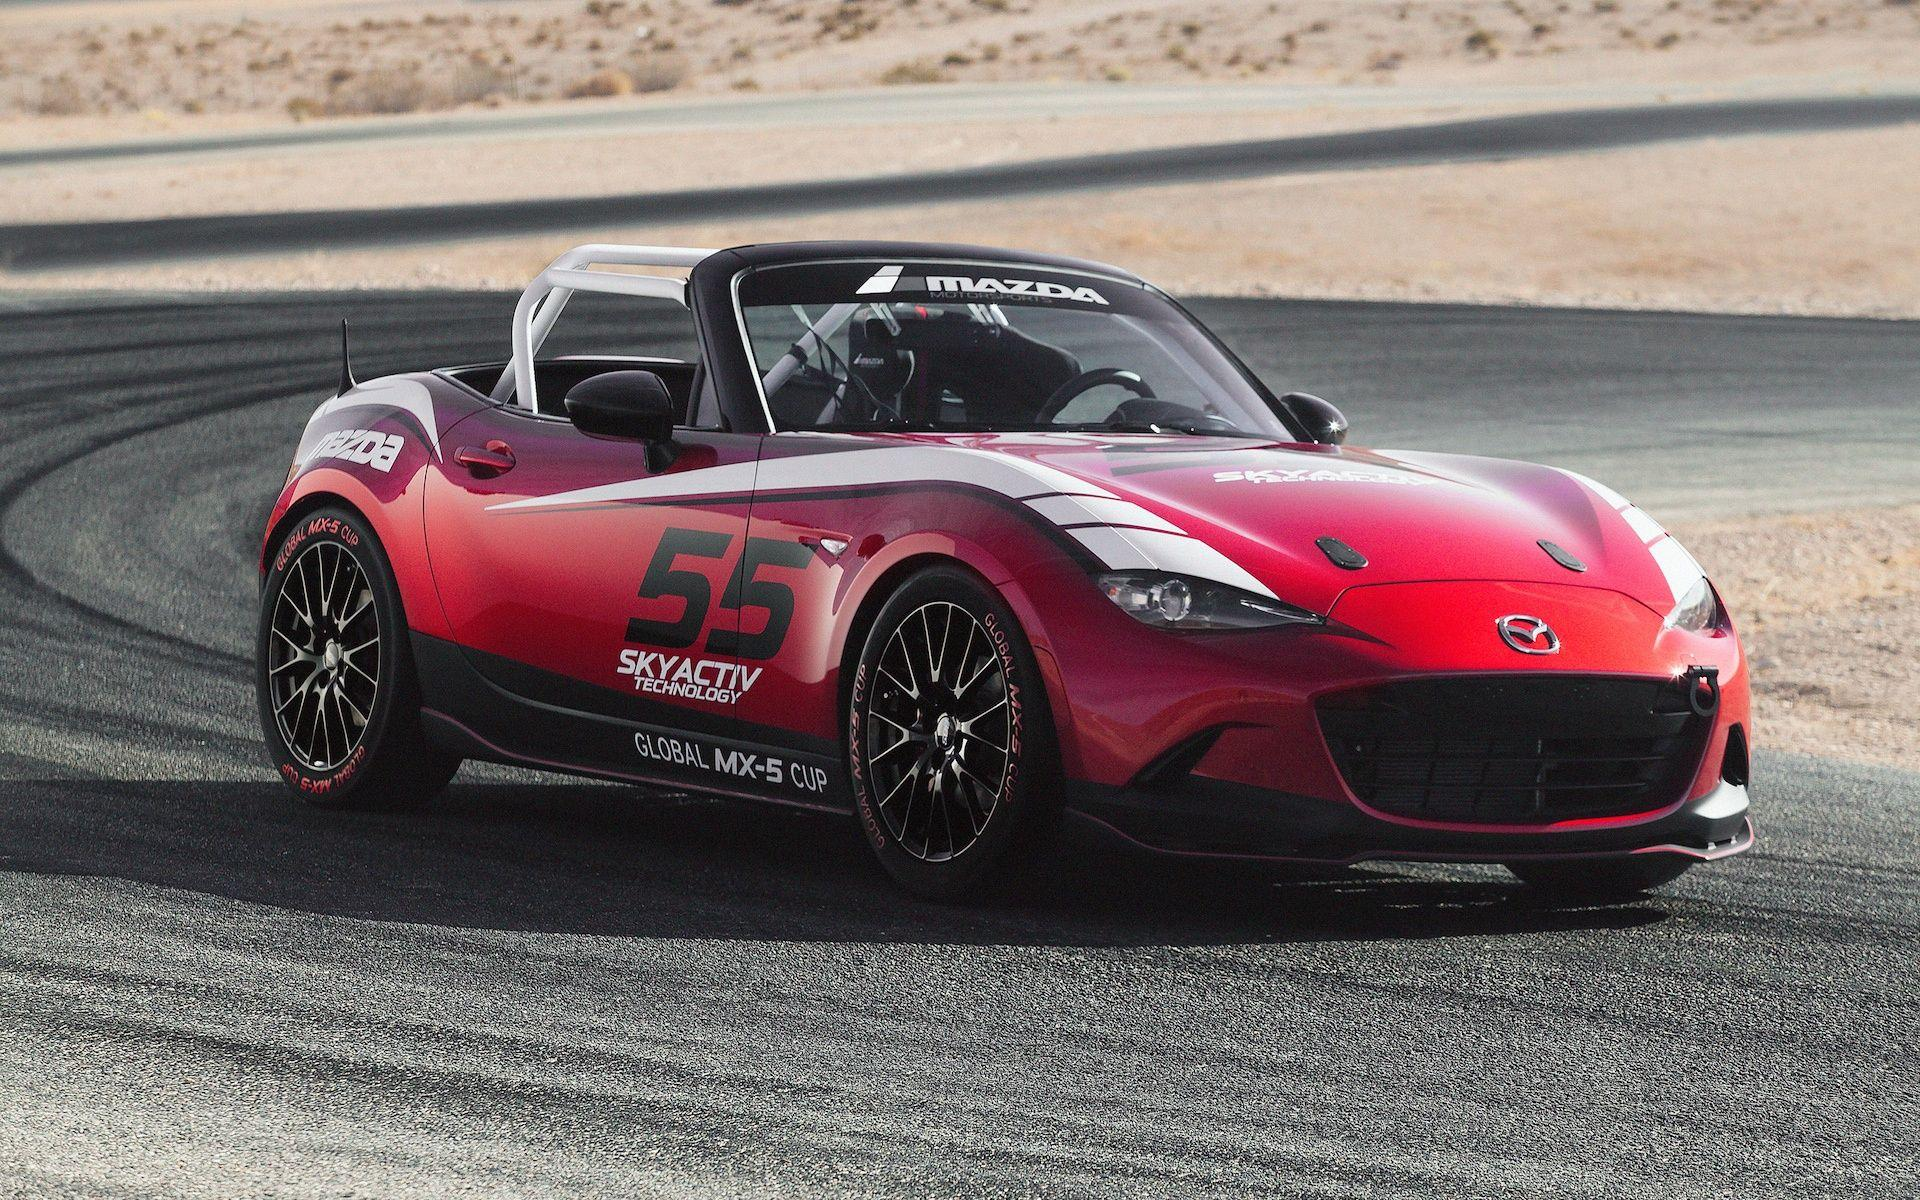 Red mazda mx 5 cup 2016 | Mazda wallpapers | Pinterest | Mazda and ...